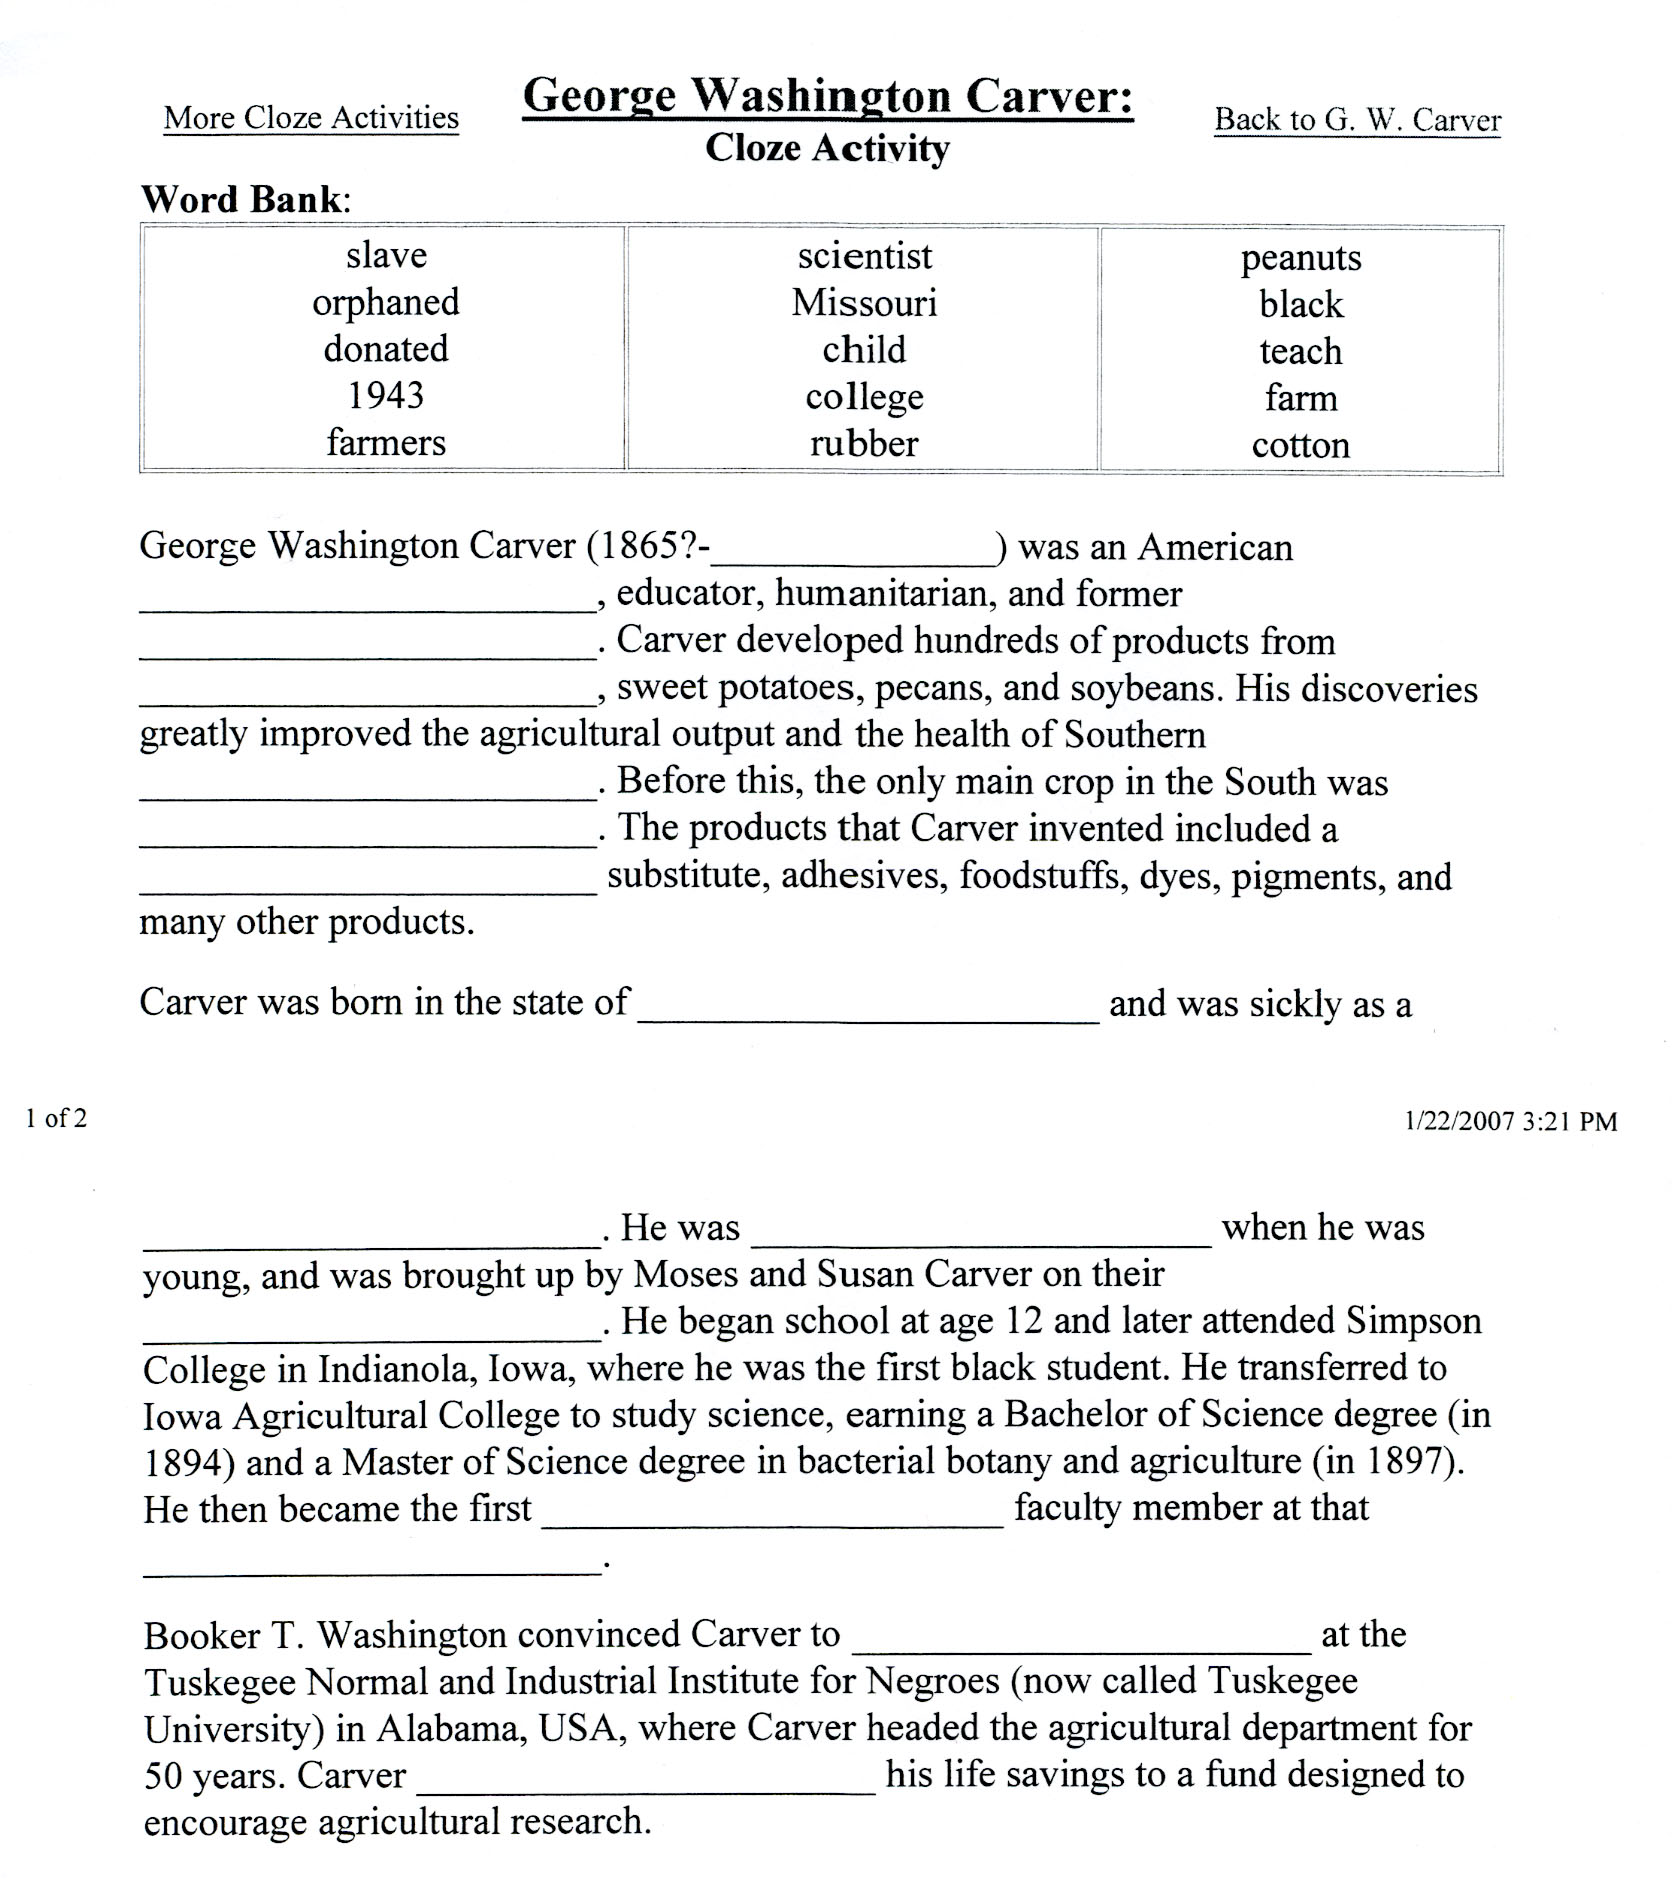 george washington carver worksheet vintagegrn george washington carver printables instructional design